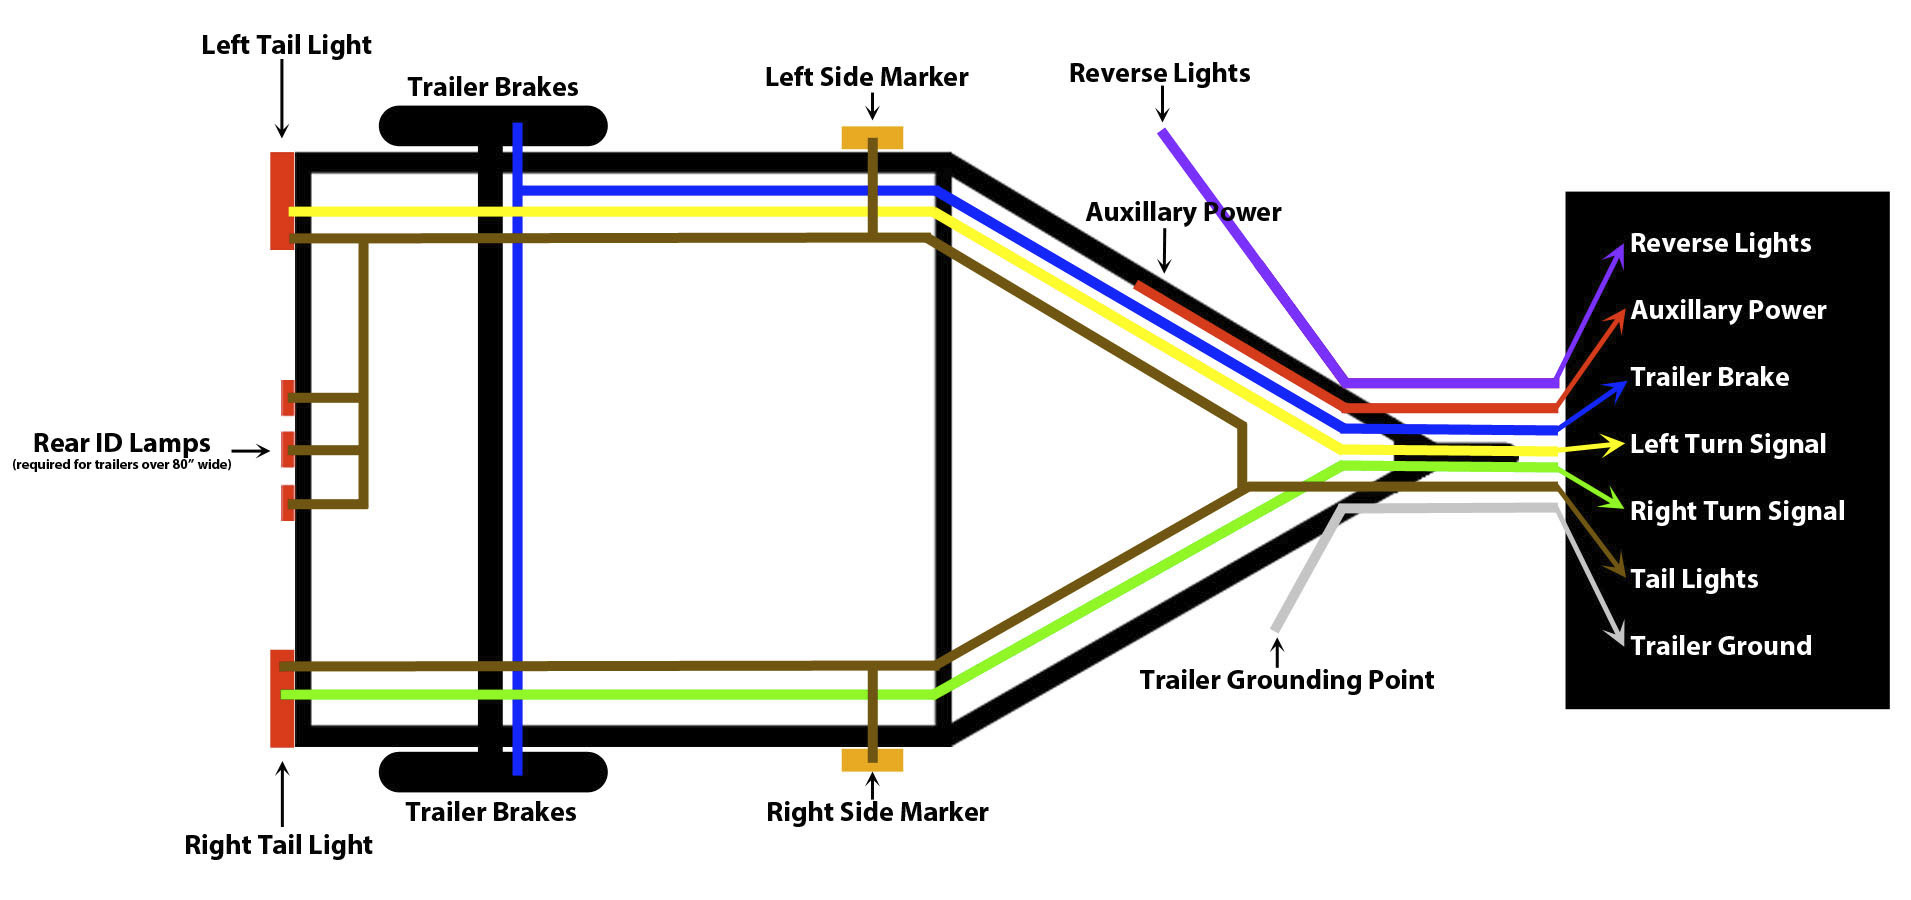 How To Wire Trailer Lights - Trailer Wiring Guide & Videos - Trailer Light Wiring Diagram